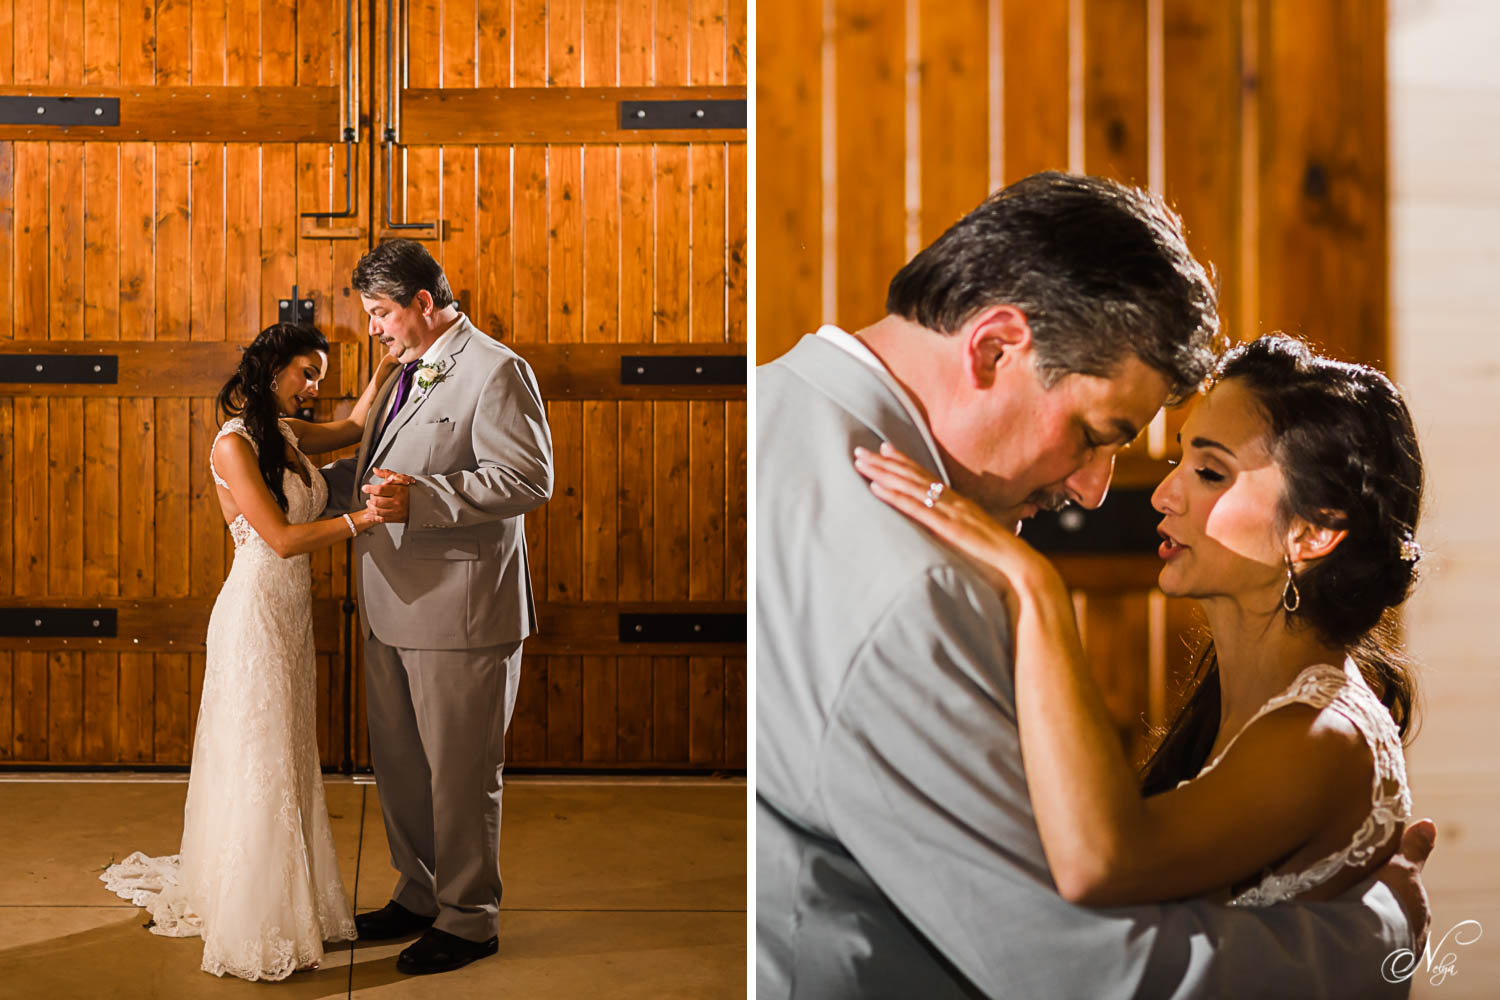 father daughter dance and dad and daughter sharing a special moment